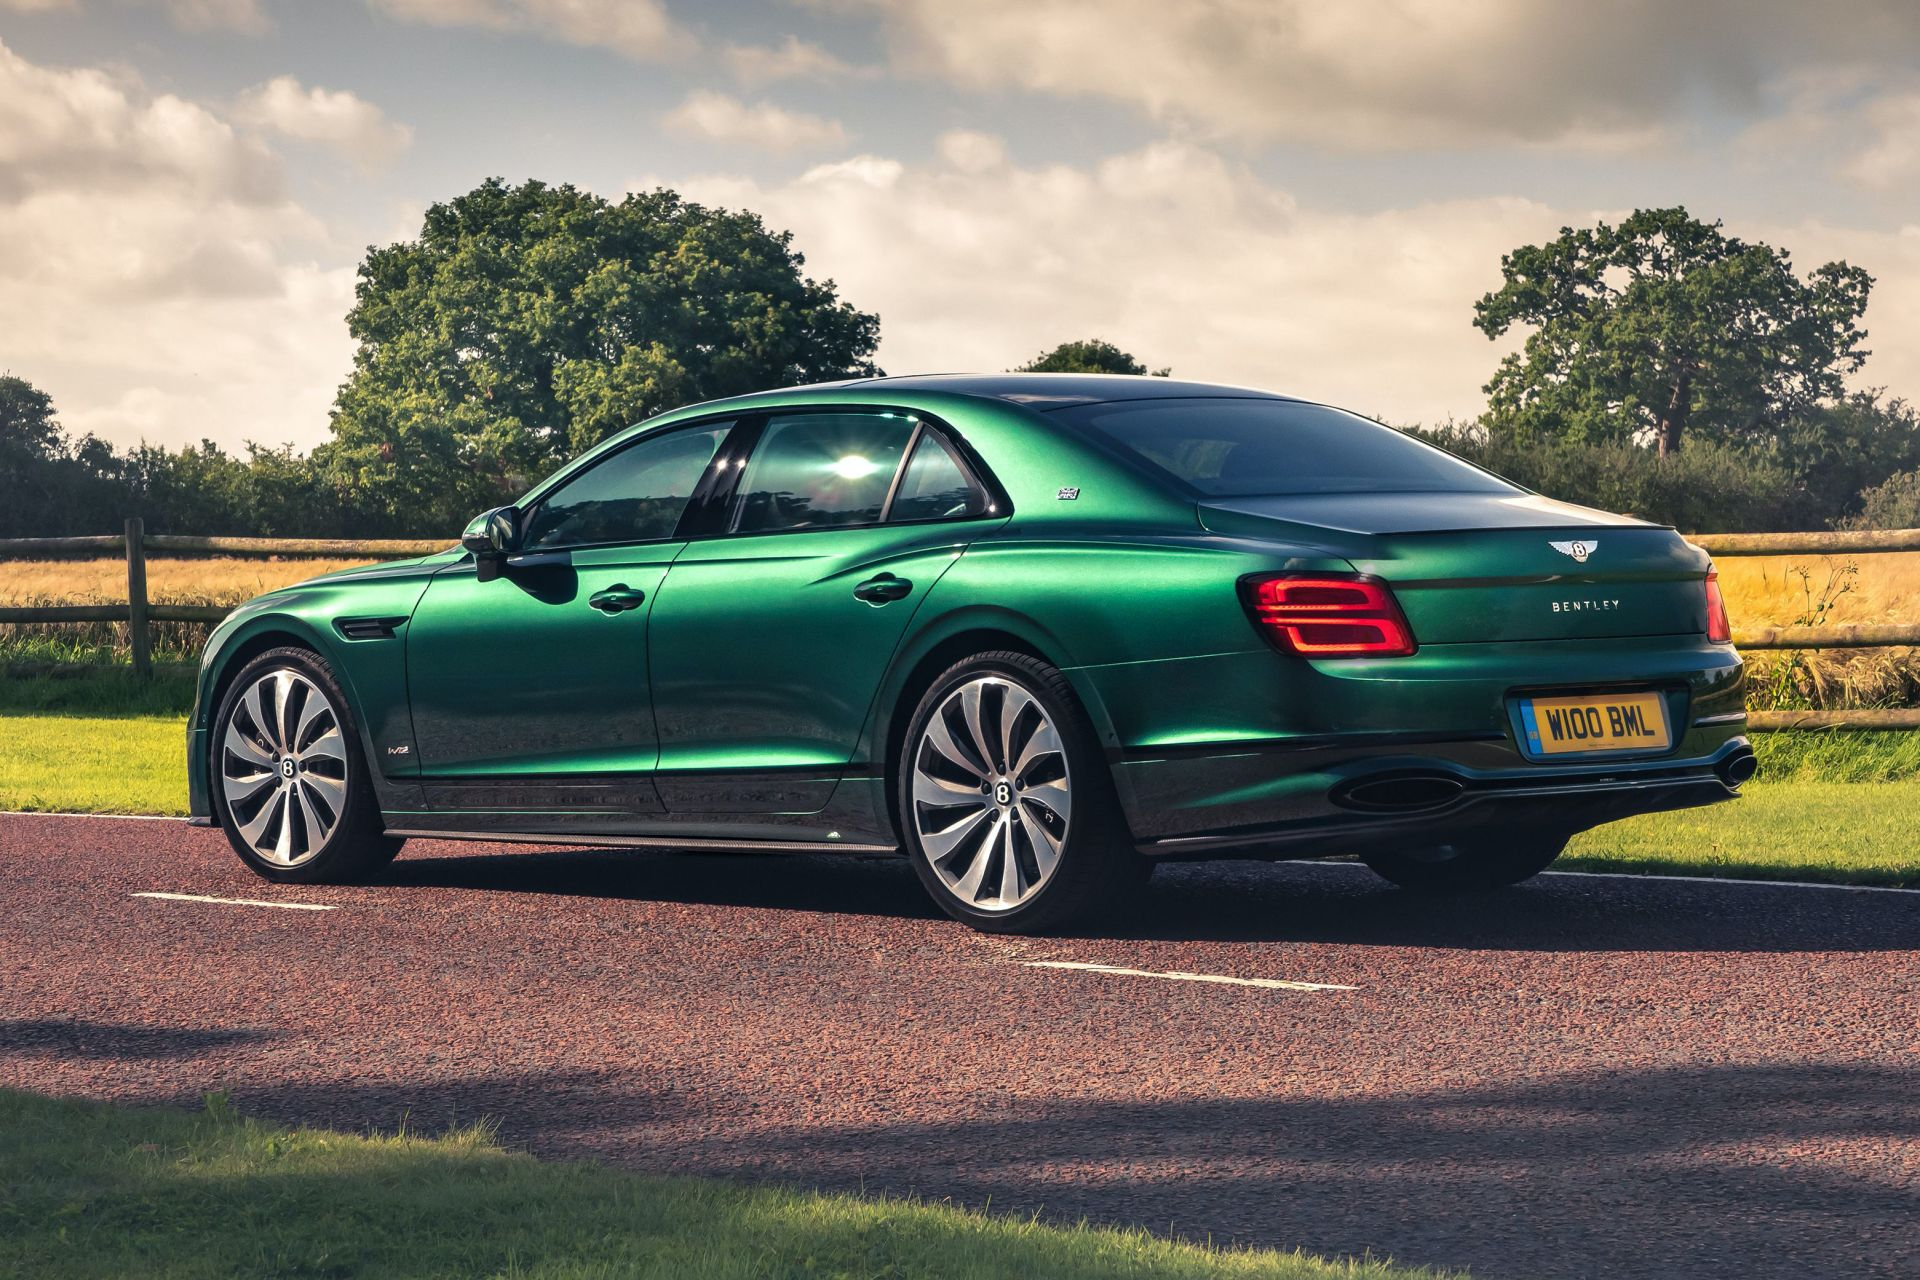 Bentley-Flying-Spur-Styling-Specification-8